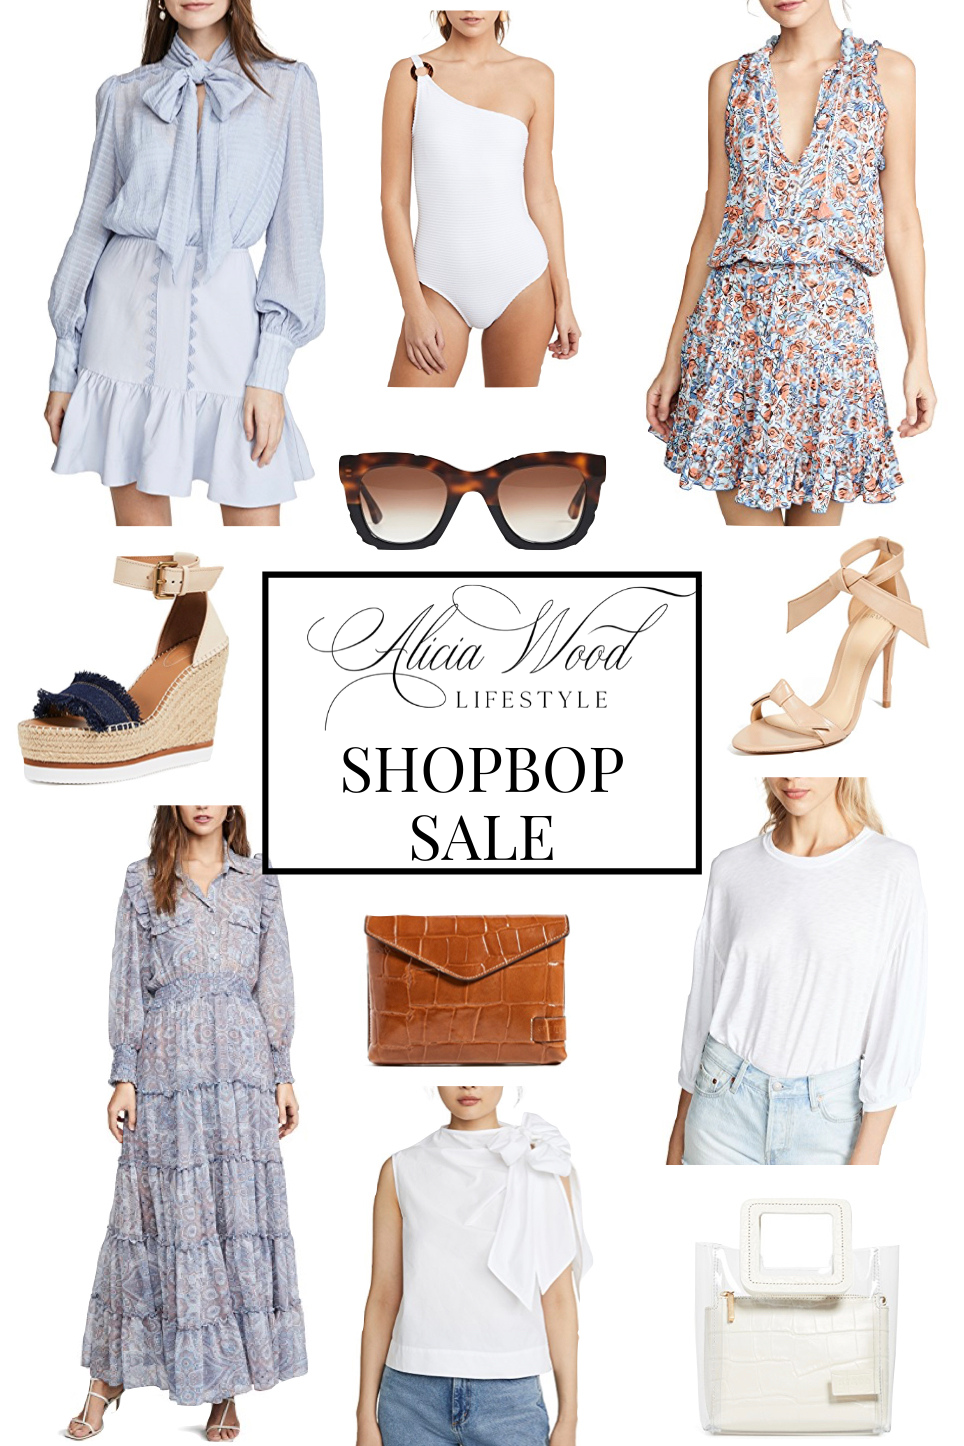 Shopbop Spring Event Sale is here!